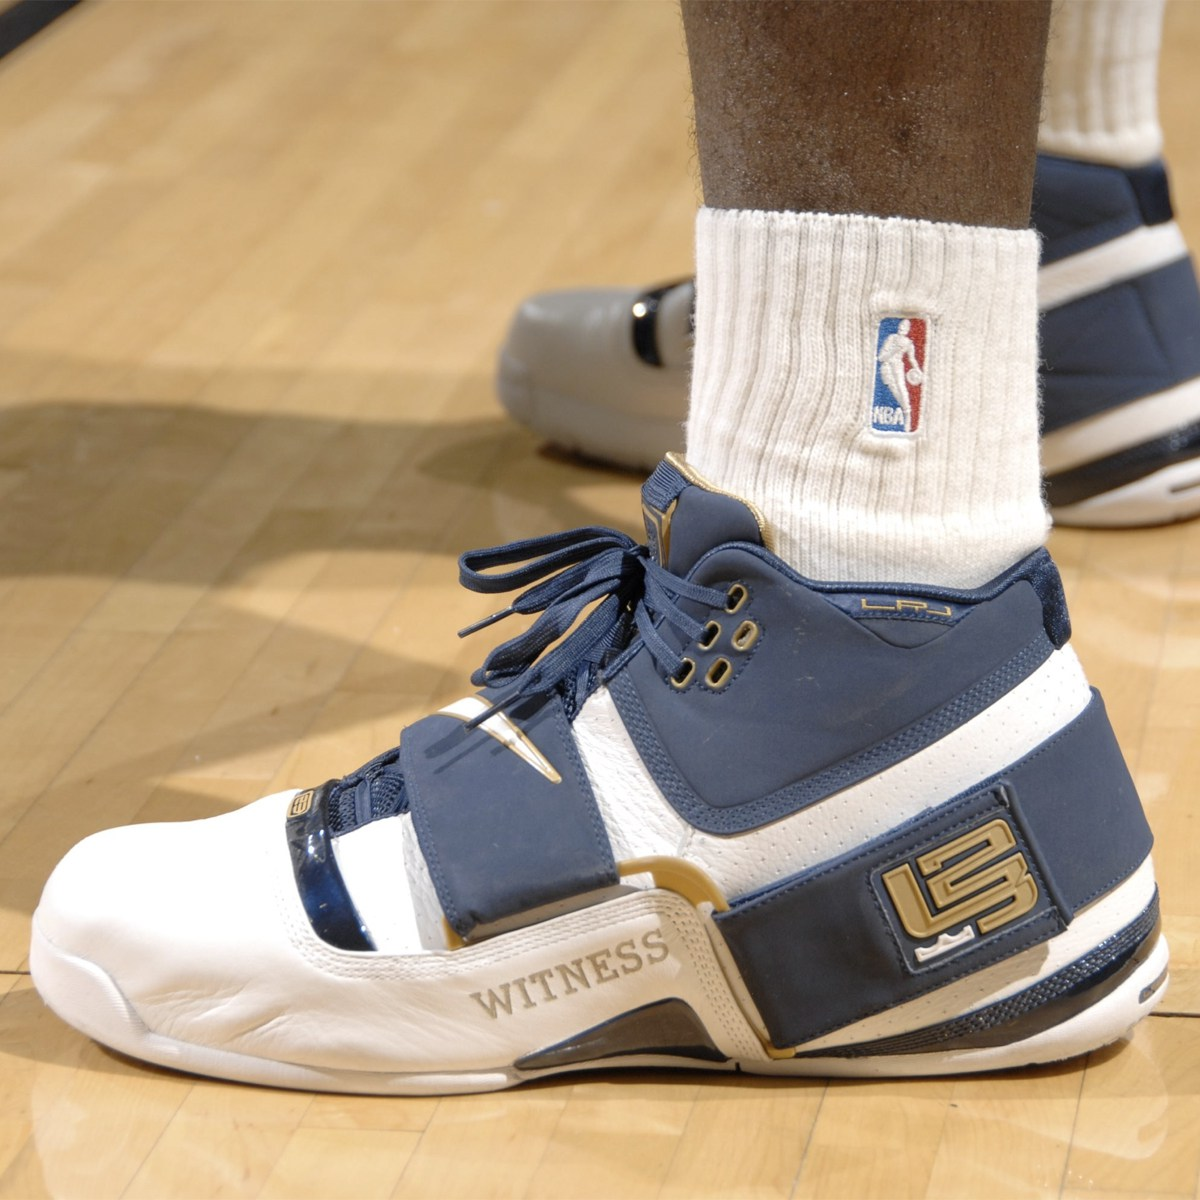 new style f0dea 0758e Here's a Detailed Look at the Nike LeBron Soldier 1 From the ...